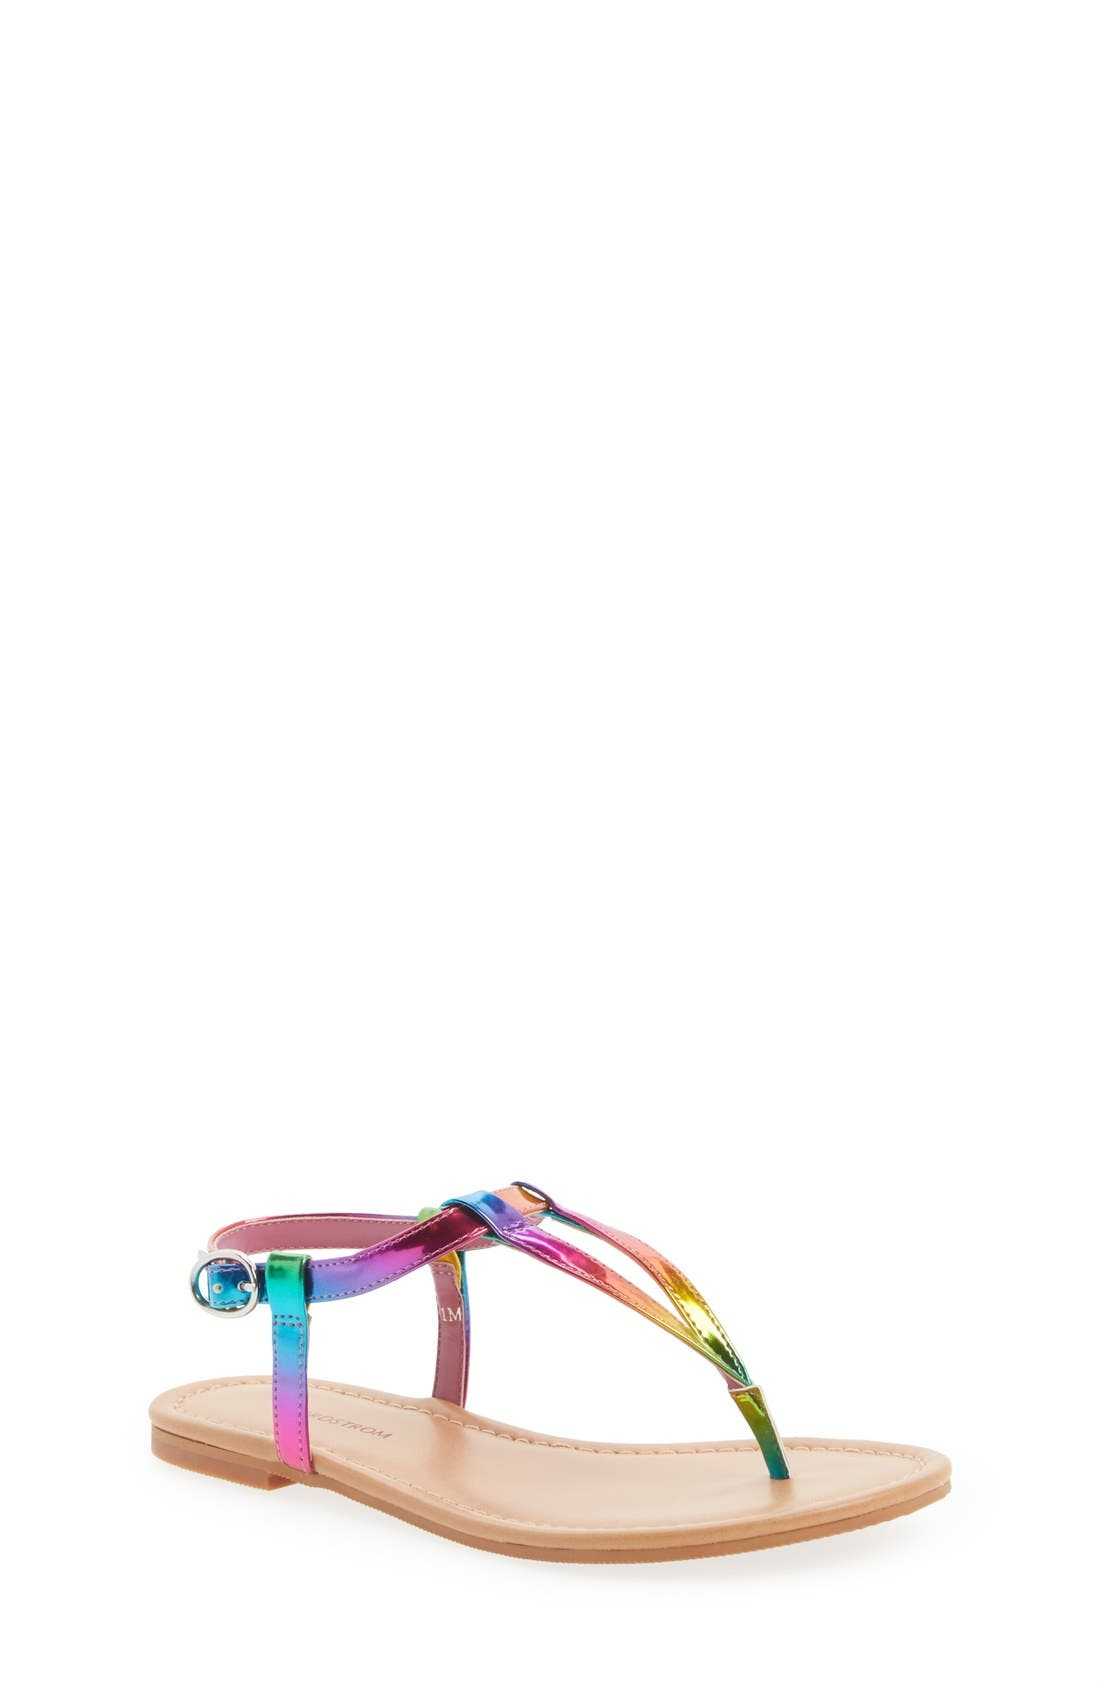 Alternate Image 1 Selected - Nordstrom 'Audra' Sandal (Toddler, Little Kid & Big Kid)